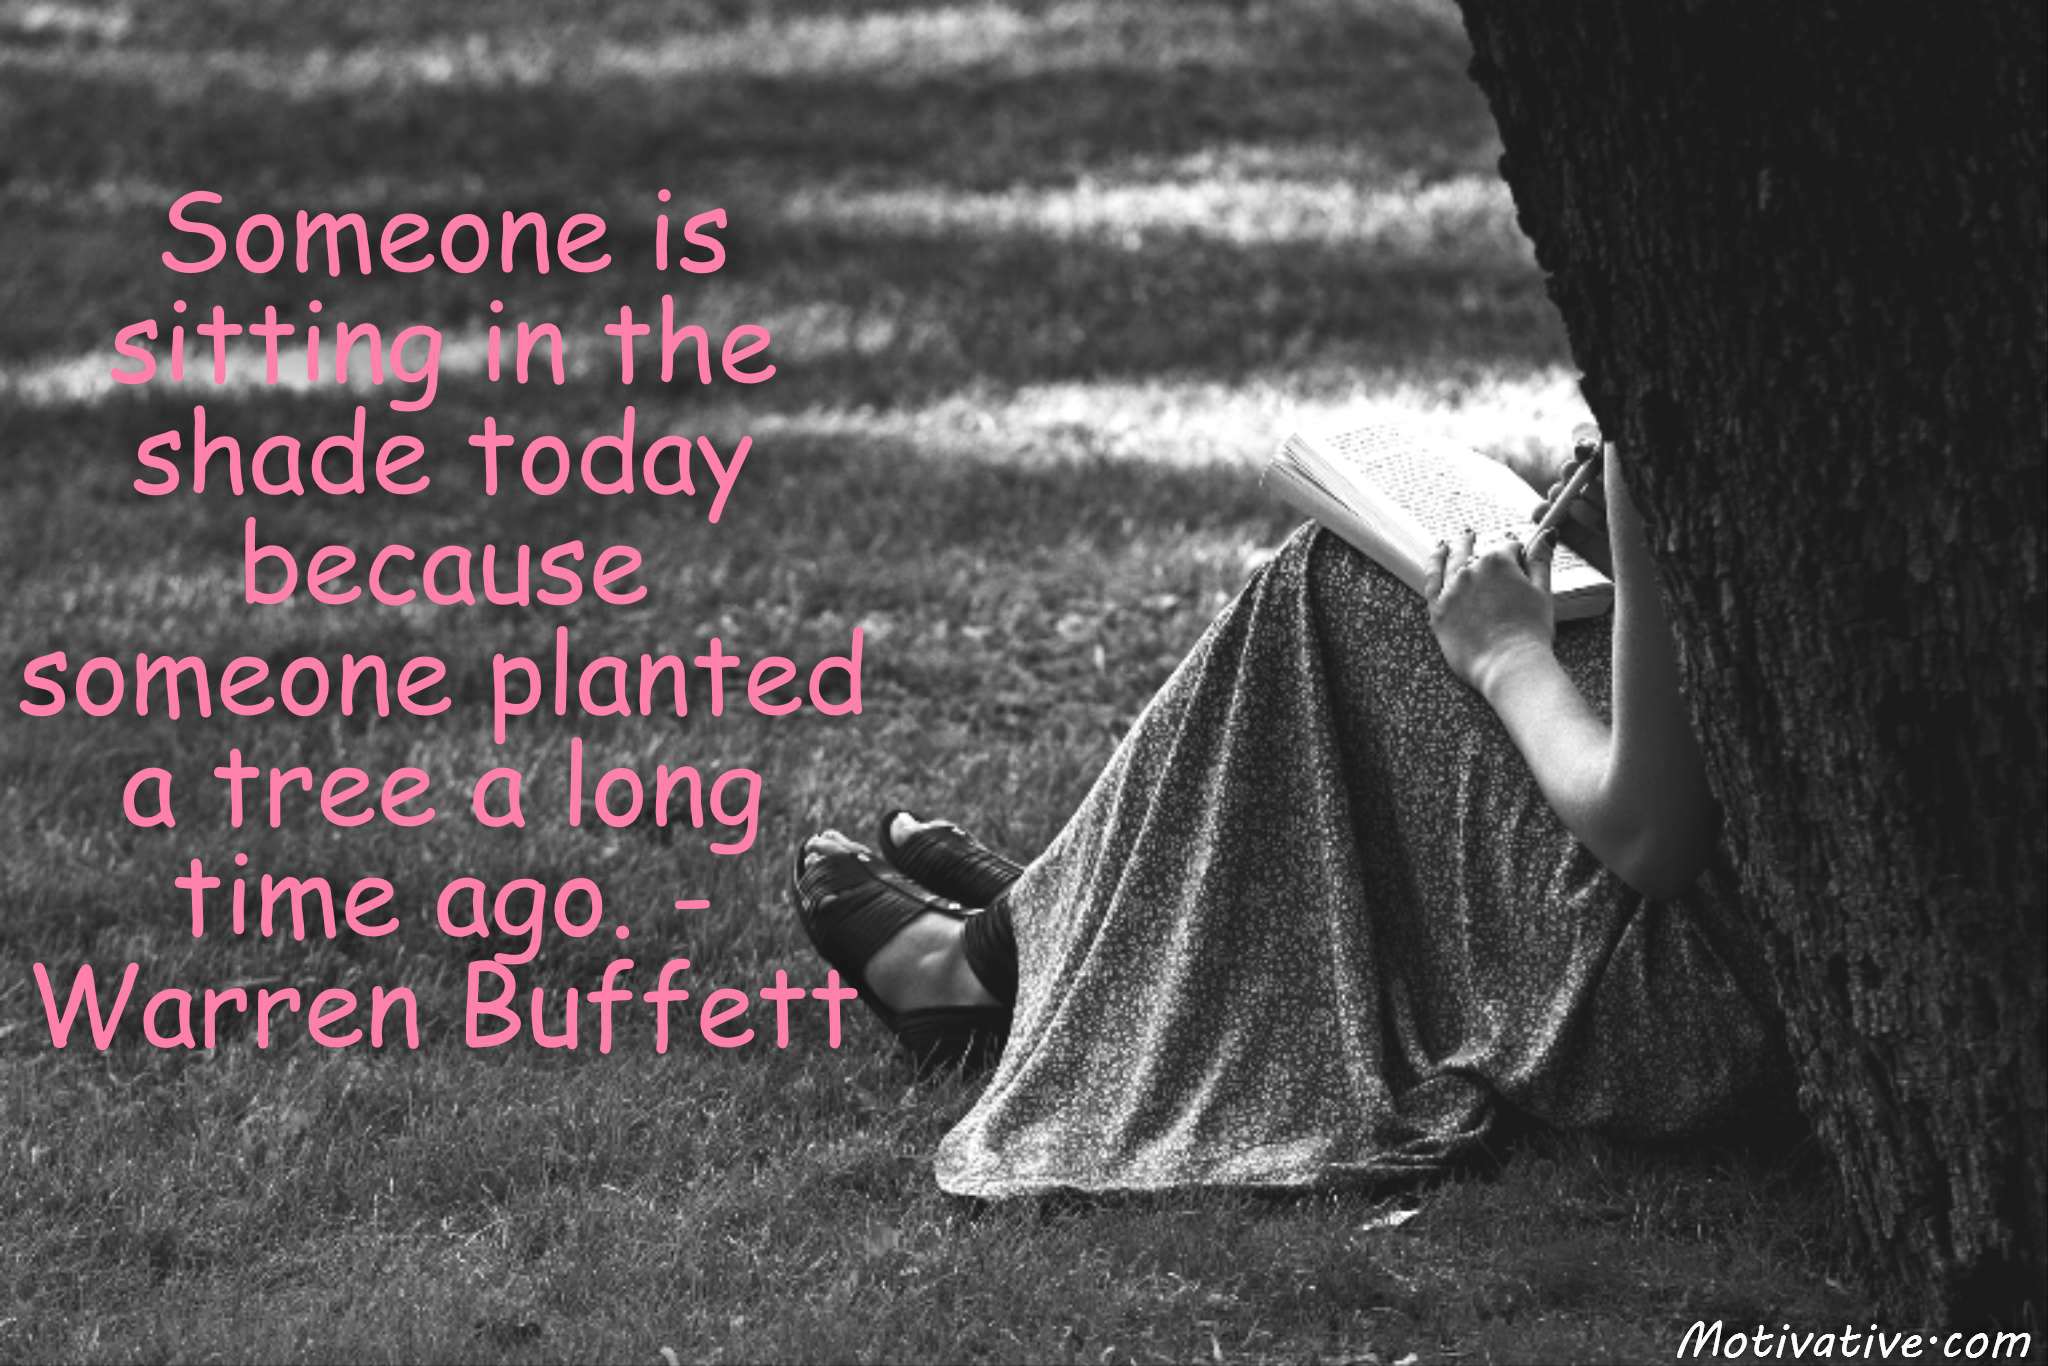 Someone is sitting in the shade today because someone planted a tree a long time ago. – Warren Buffett